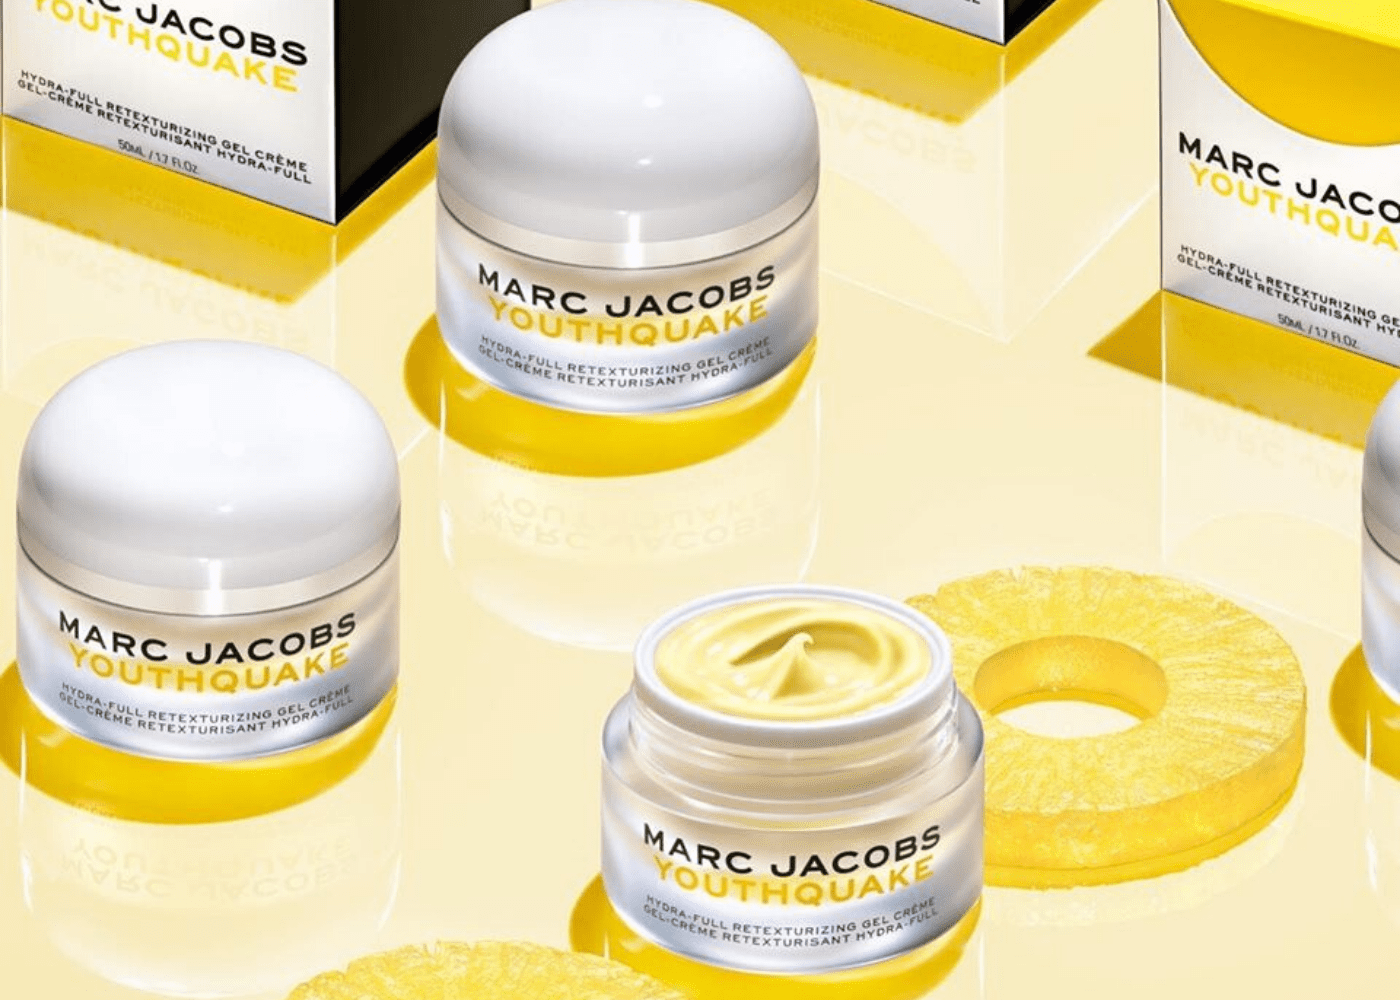 Marc Jacobs Youthquake Hydra-full Retexturising Gel Creme Moisturiser | Honeycombers Singapore beauty review | April 2020